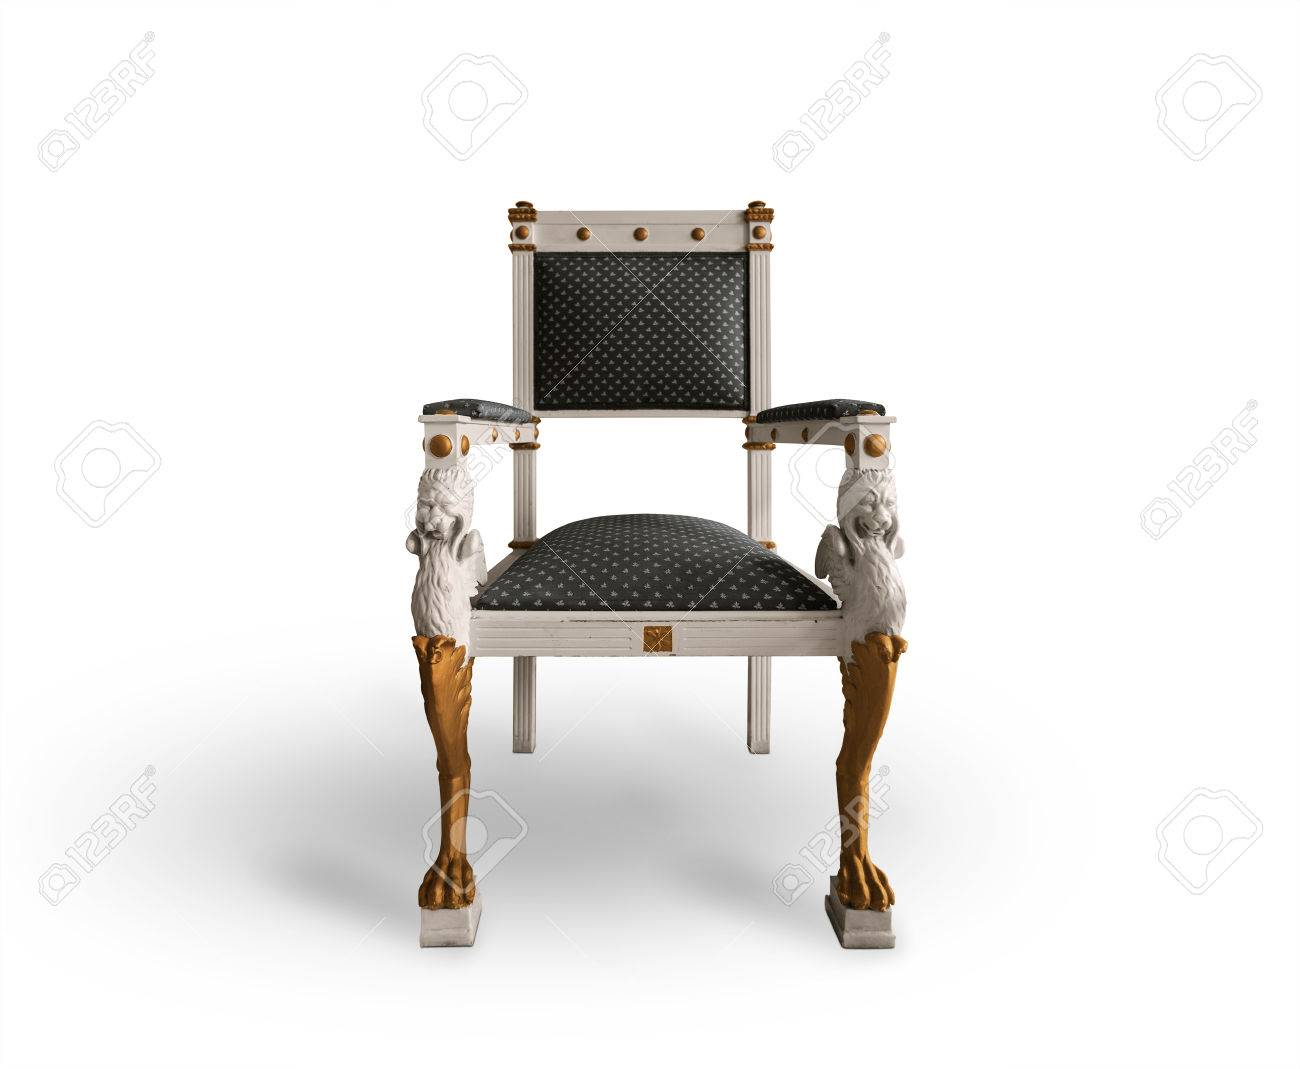 Old Throne Chair On White Background Stock Photo   51916996